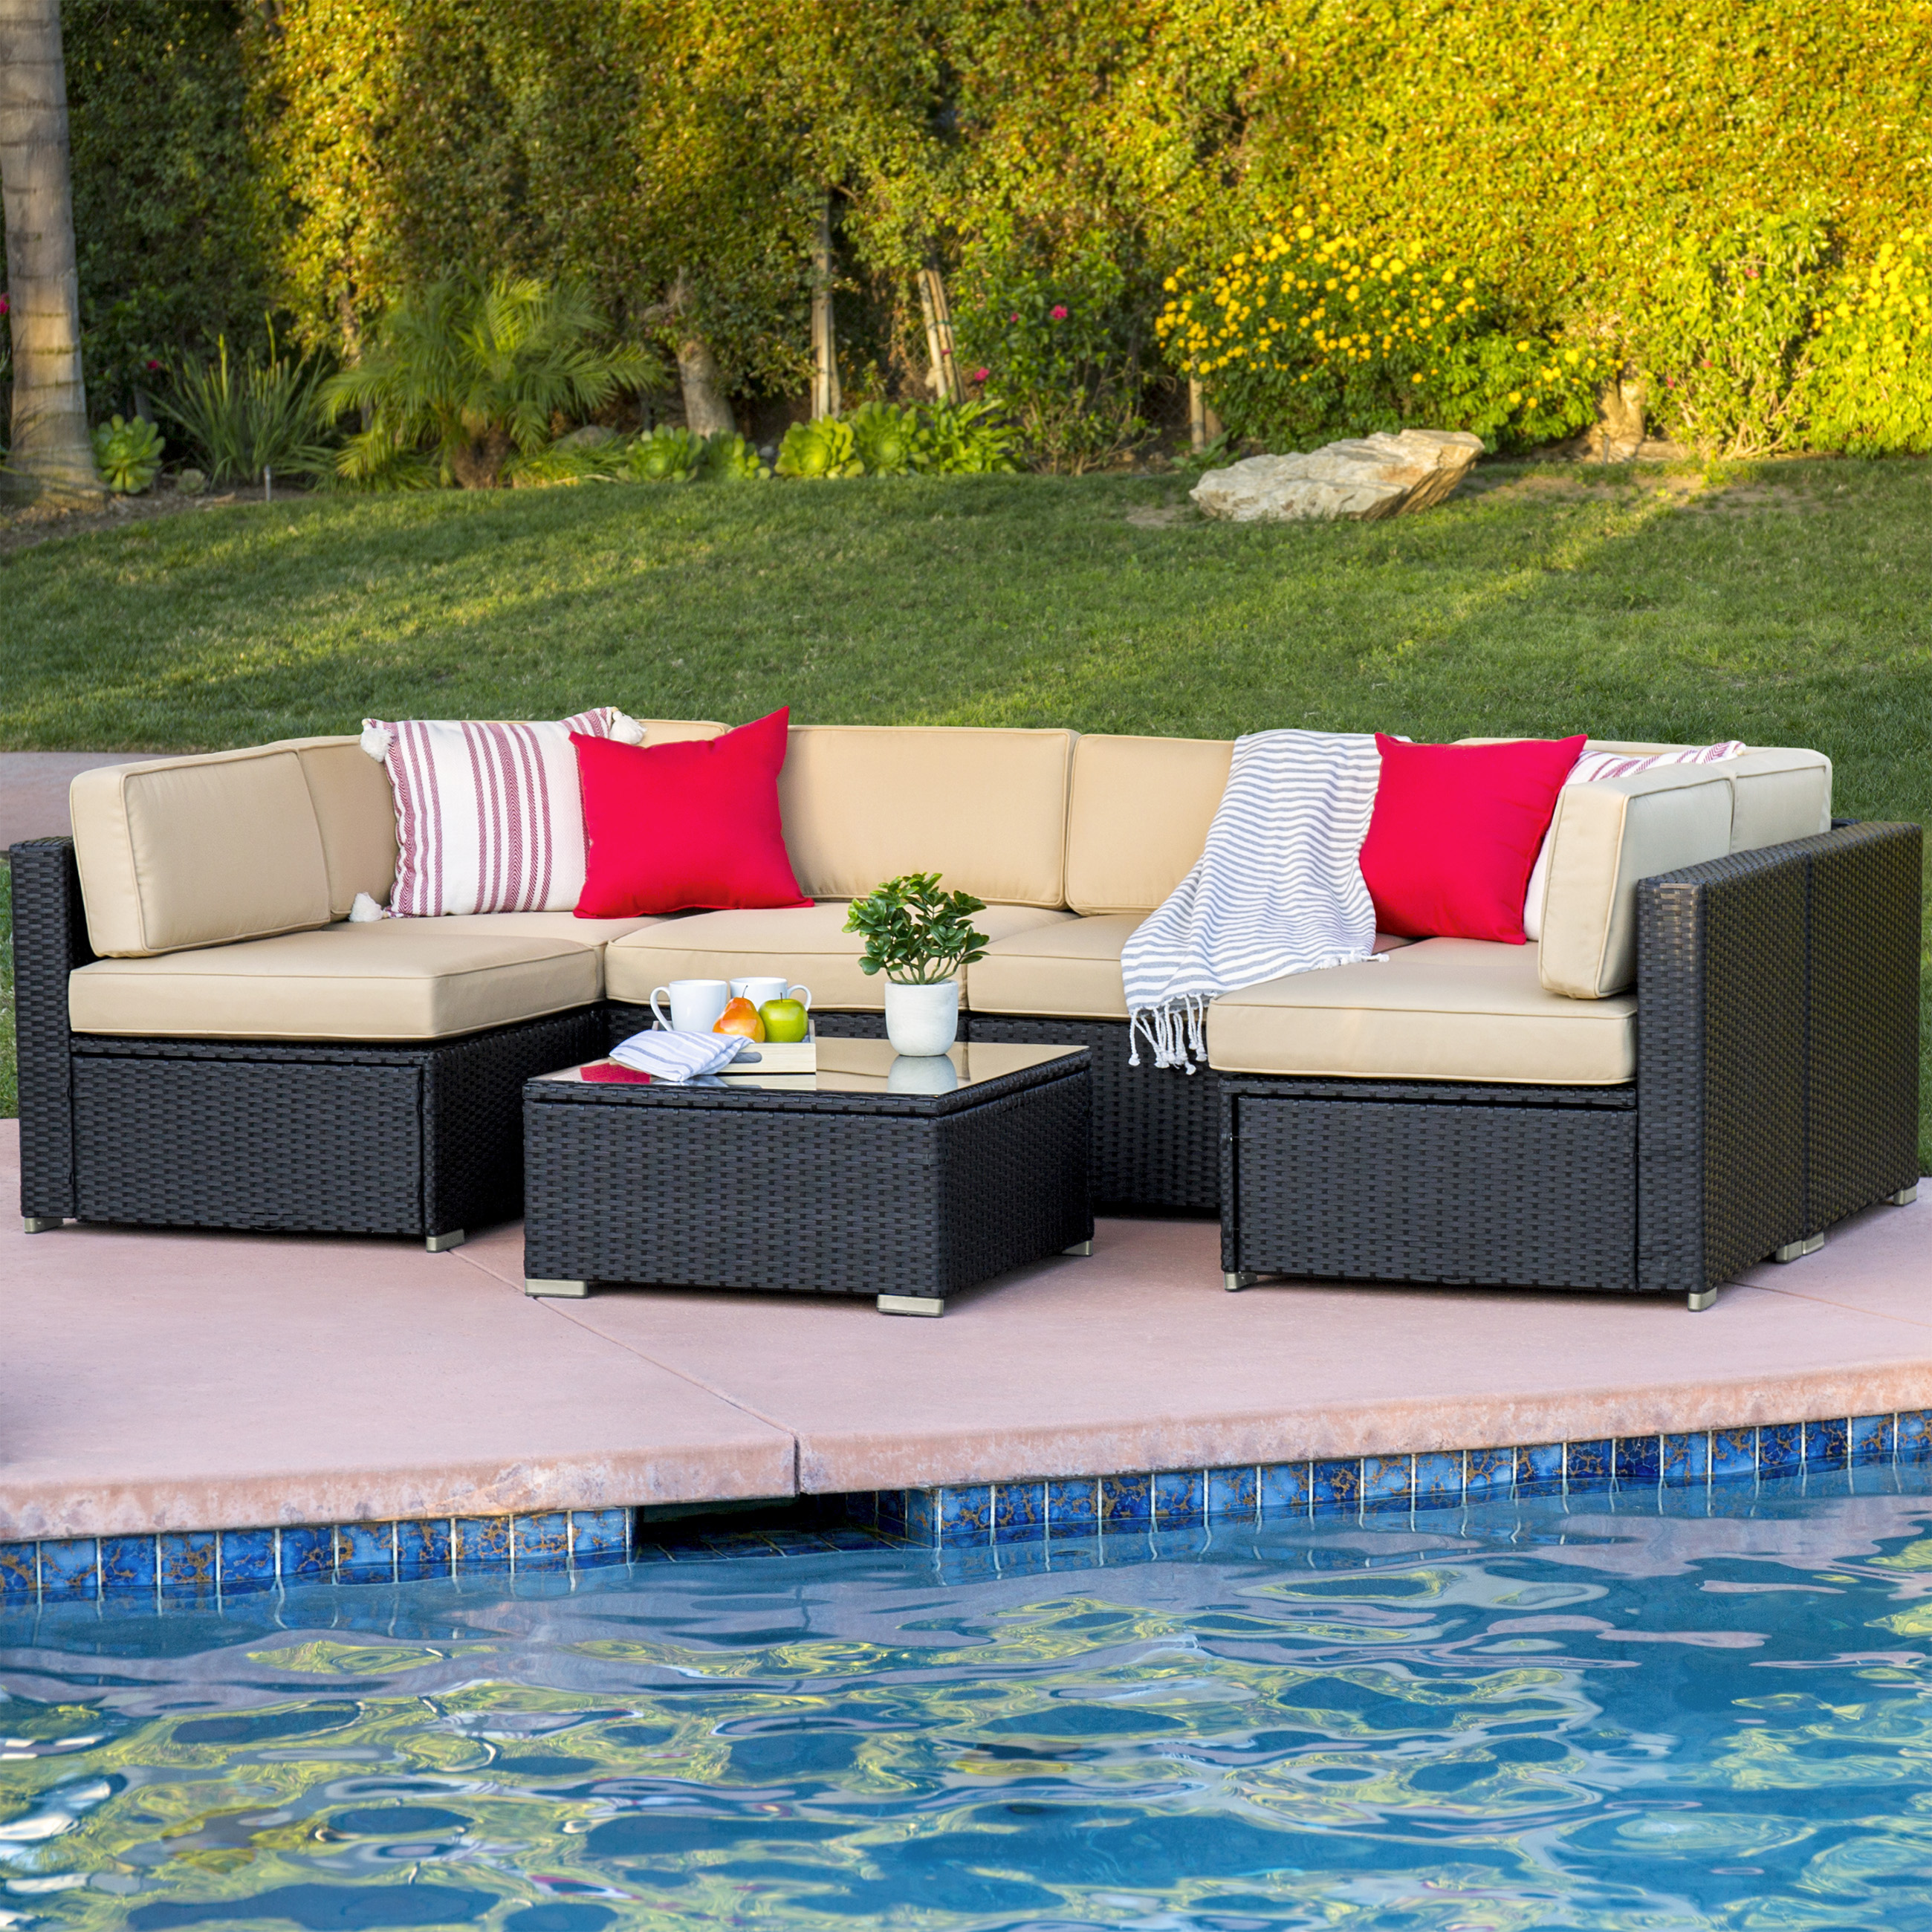 Stunning Best Choice Products 7pc Outdoor Patio Garden Wicker Furniture Rattan Sofa  Set outdoor wicker furniture